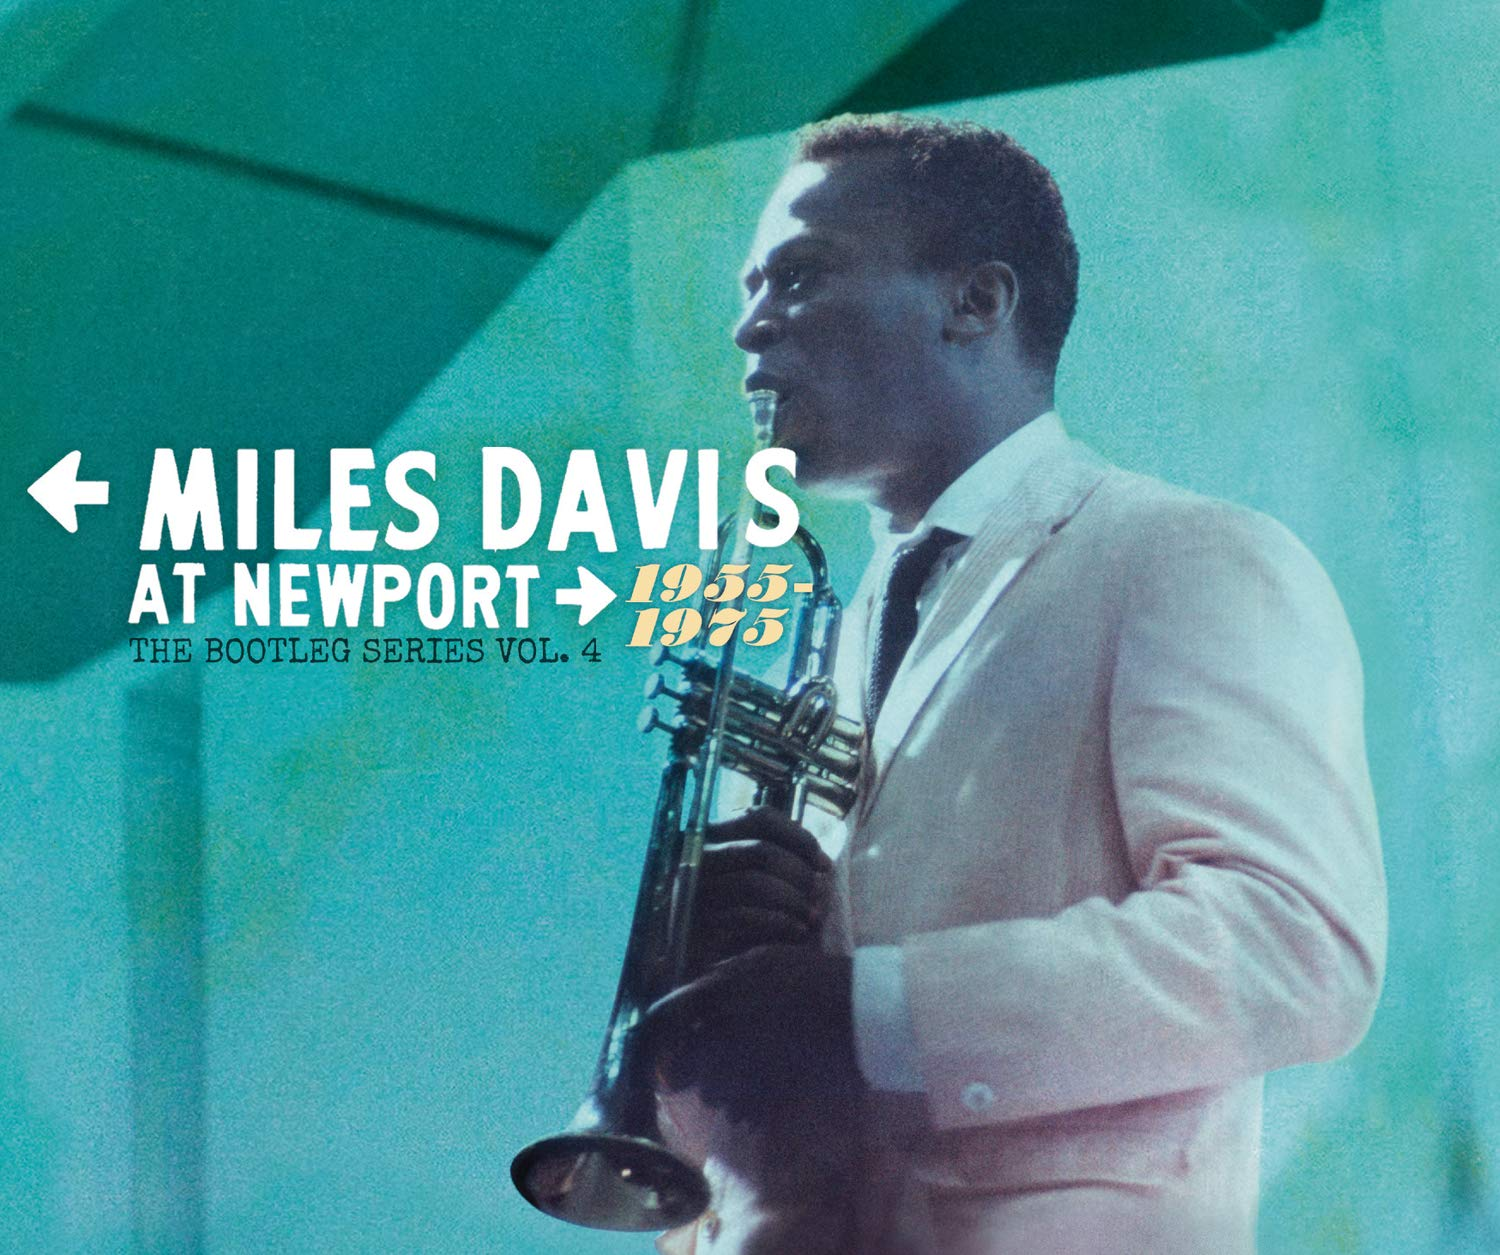 Miles Davis at Newport: 1955-1975: The Bootleg Series Vol. 4 by Sony Legacy